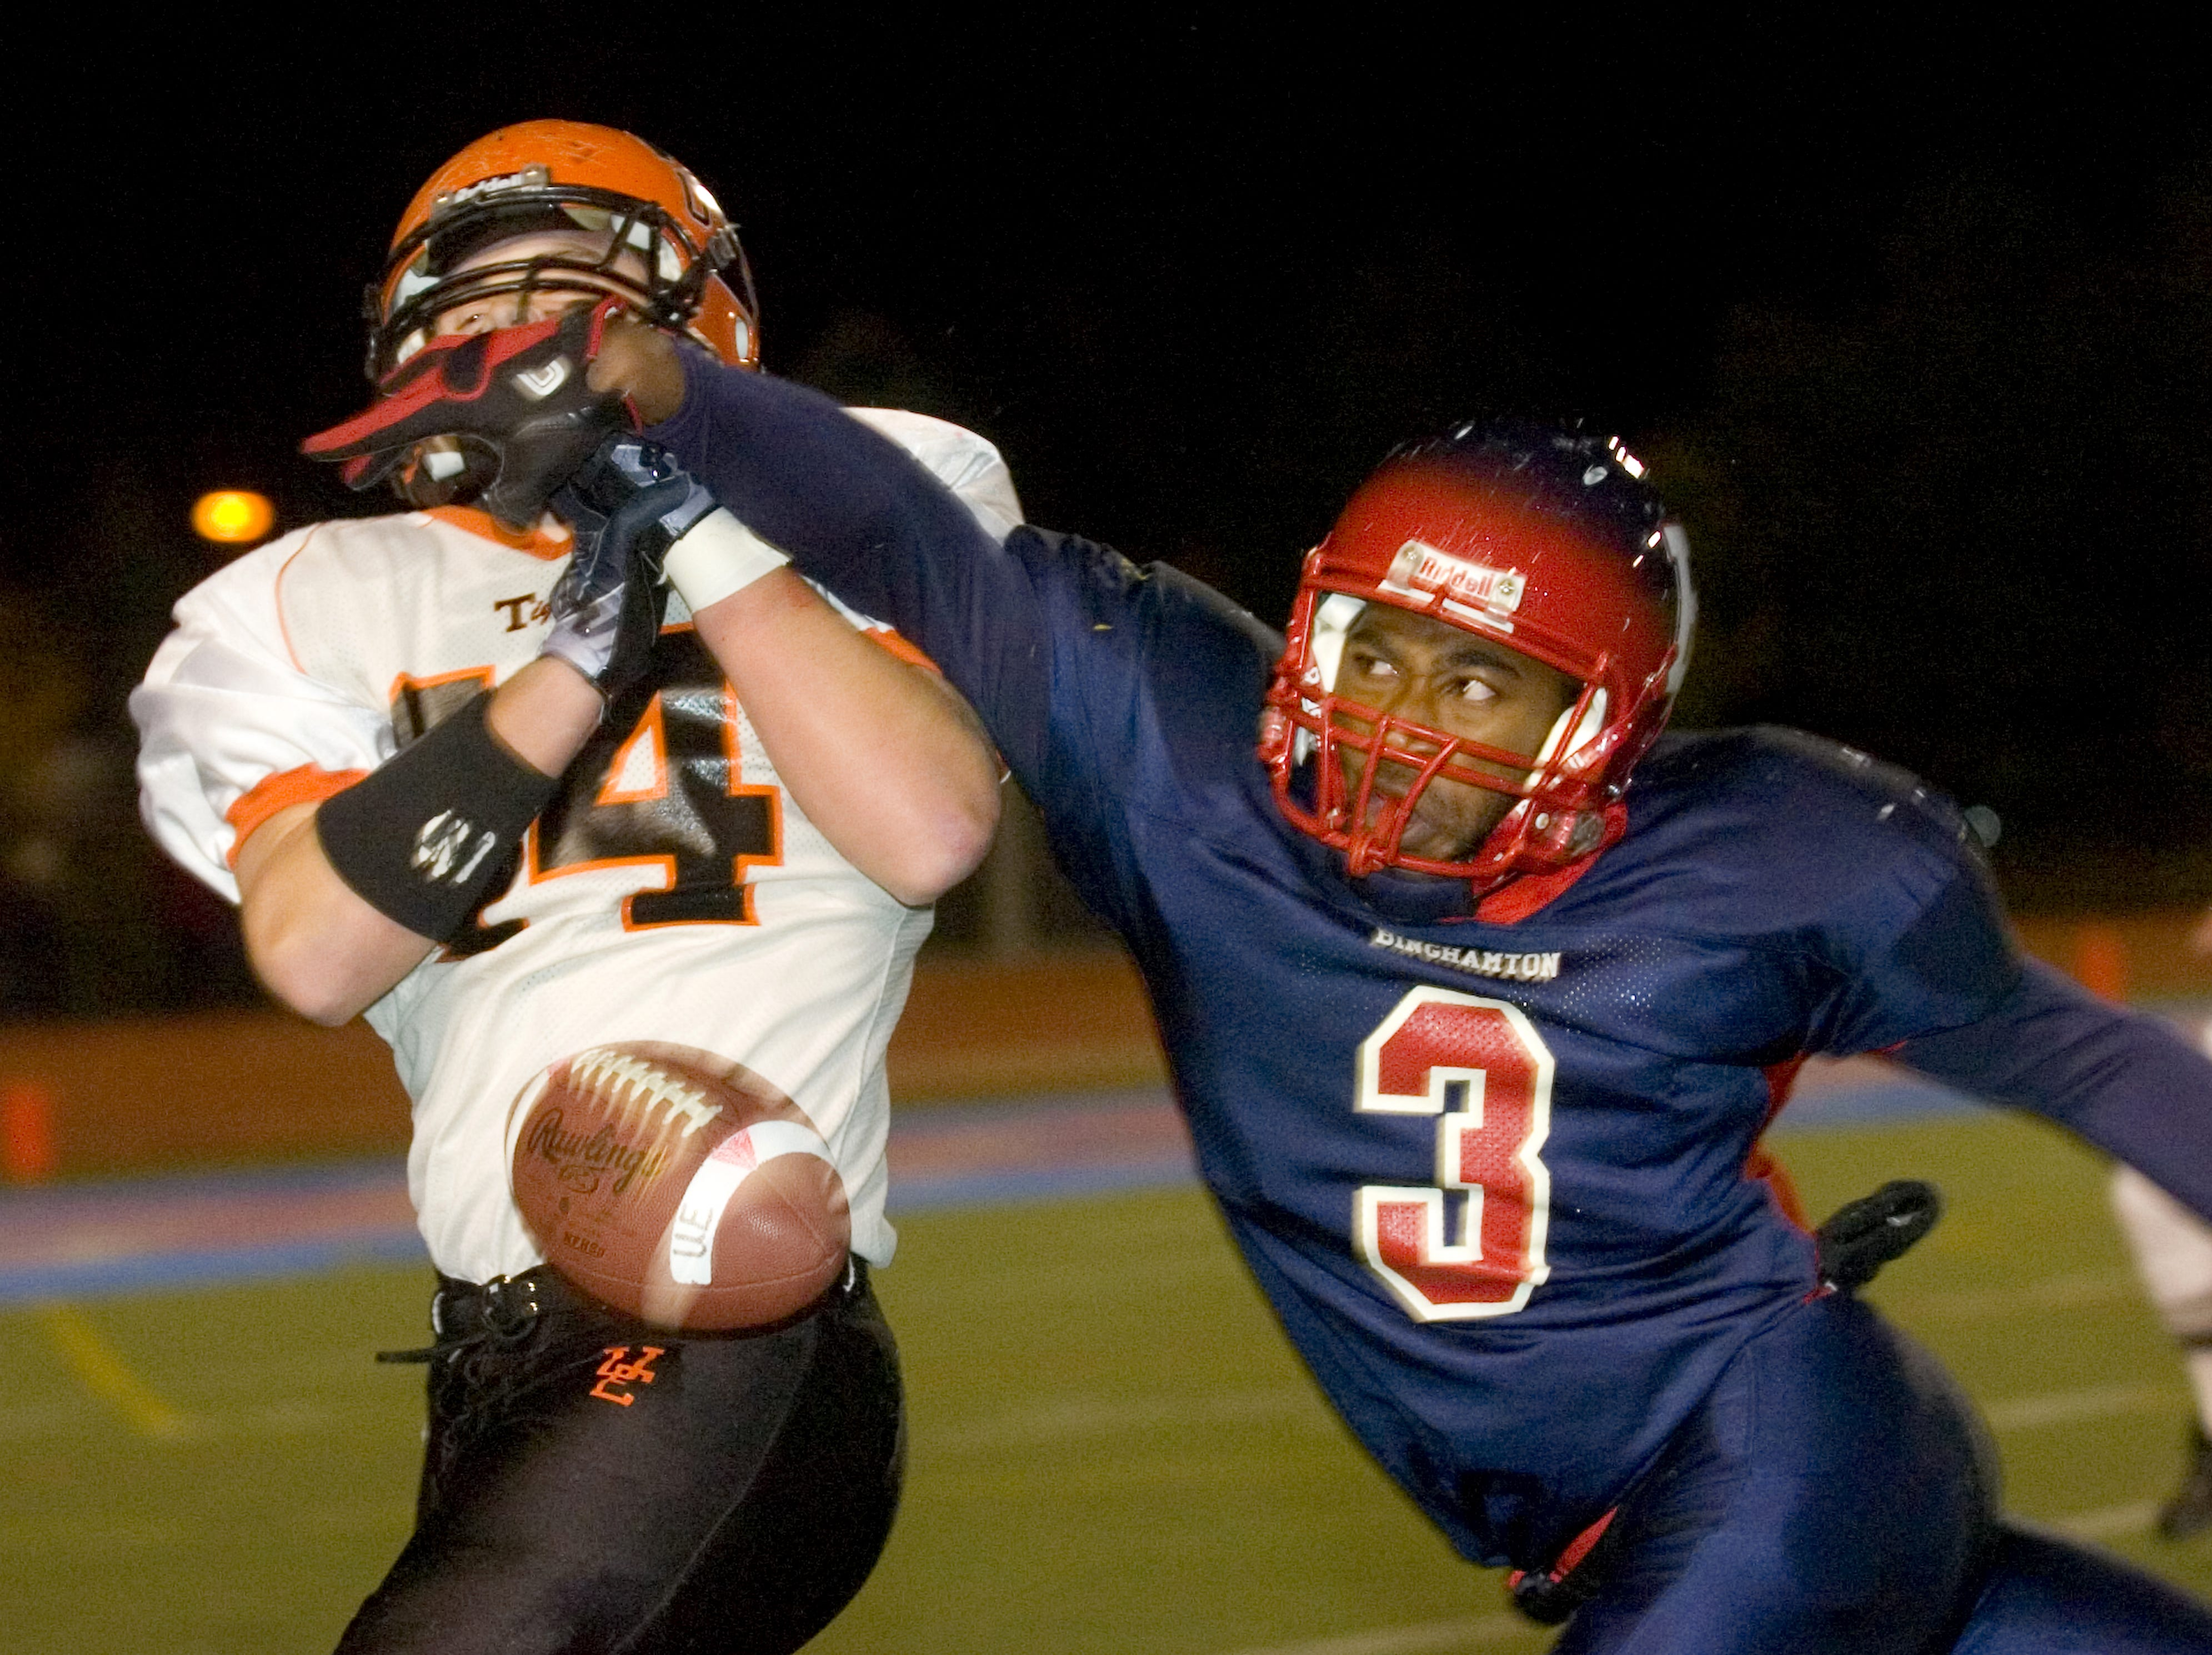 Binghamton's Delroy Young, right, breaks up a pass to Union-Endicott's Troy Beddoe in the first quarter of the Section 4 Class AA football semifinal game in 2010 at Alumni Stadium in Binghamton.